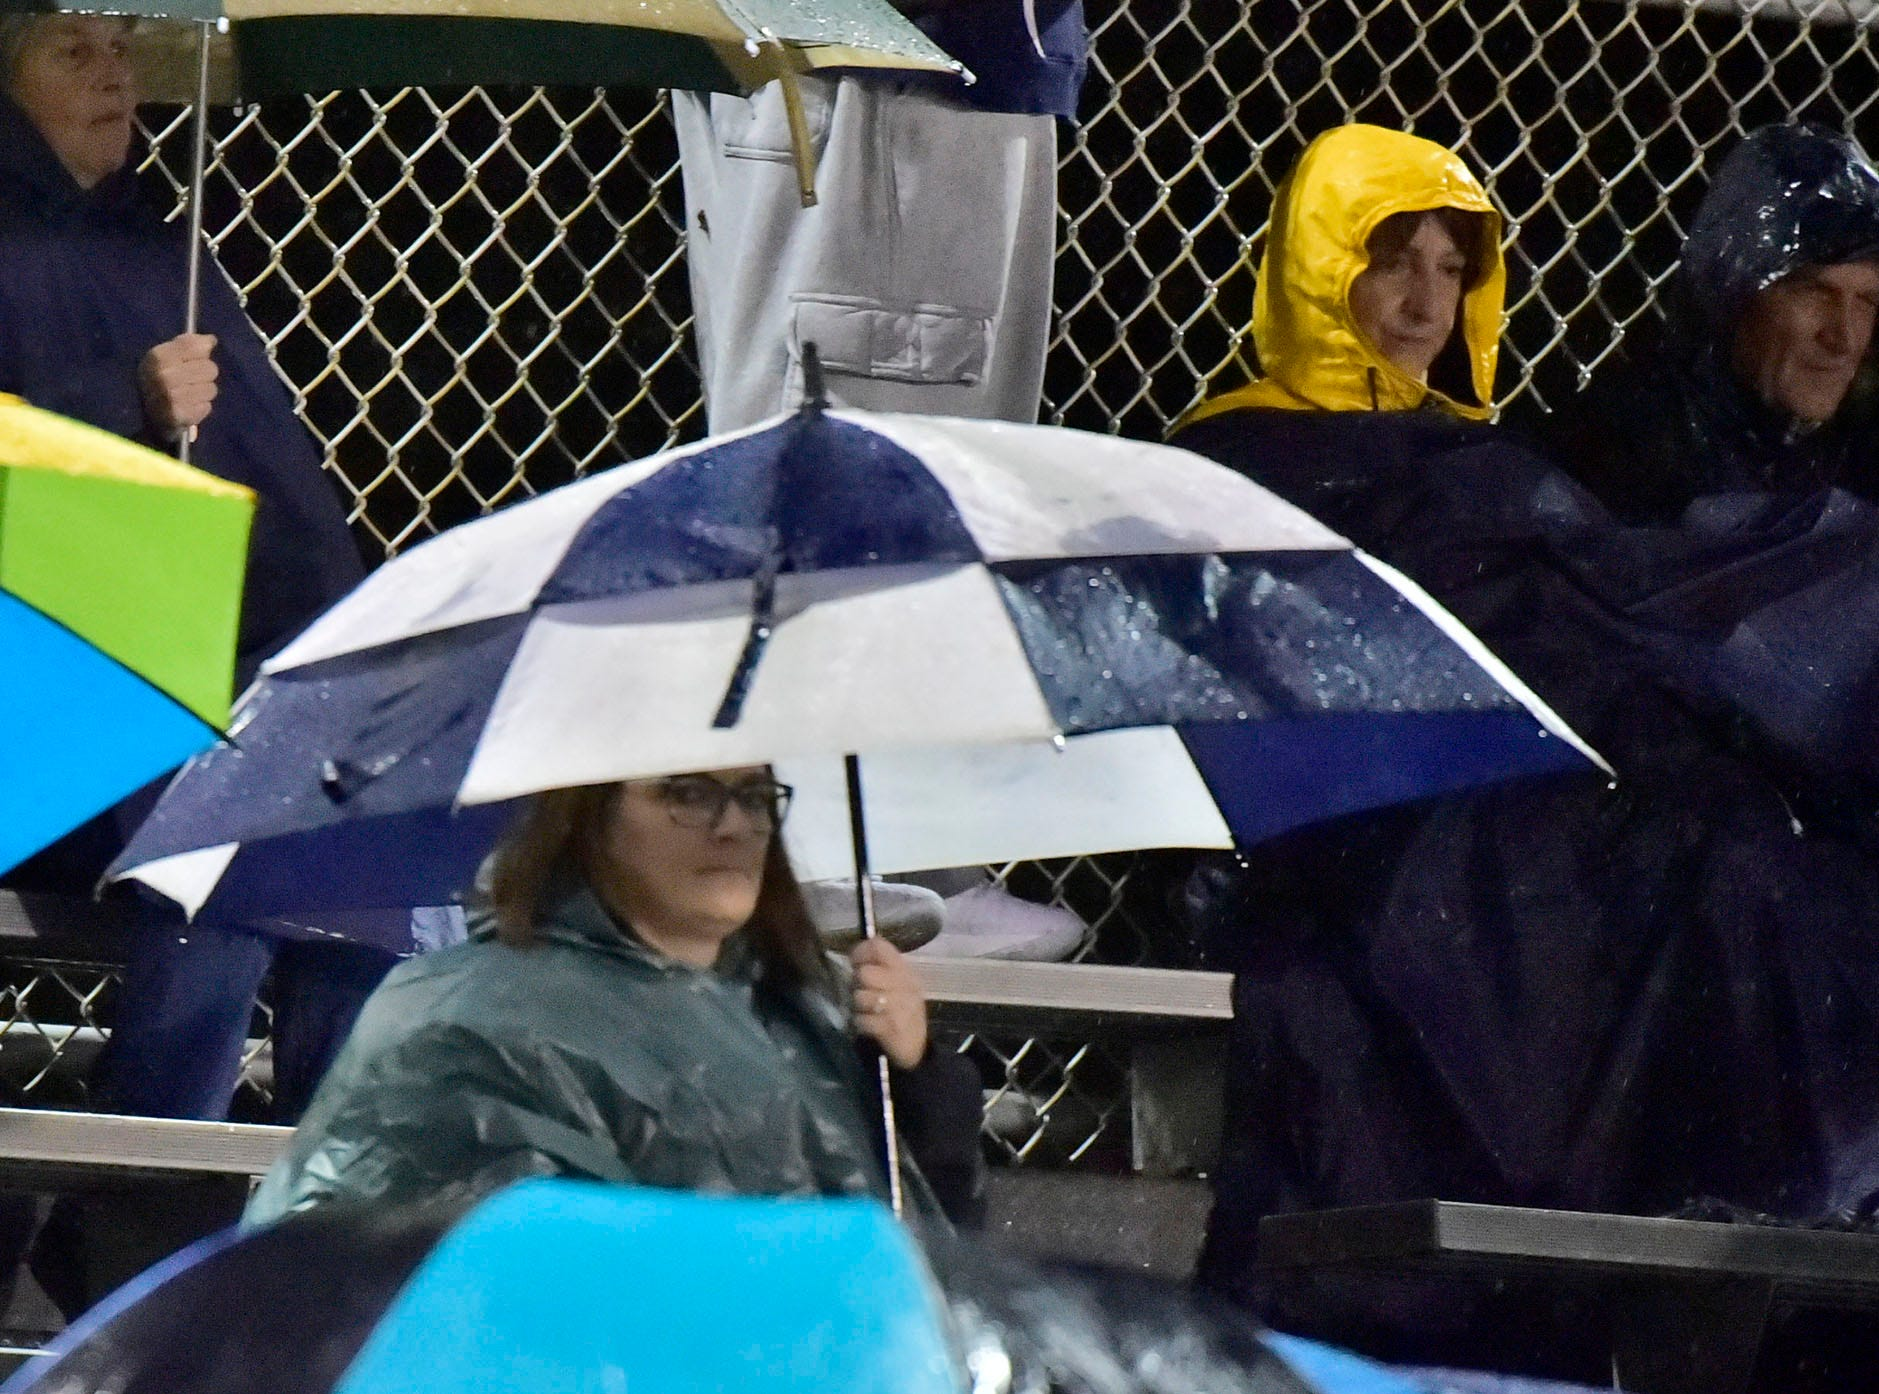 Fans sit through a rainy ball game. Chambersburg Trojans dropped a close game 20-17 to Manheim Township Blue Streaks in the rain during PIAA District 3 playoff football on Friday, Nov. 2, 2018.